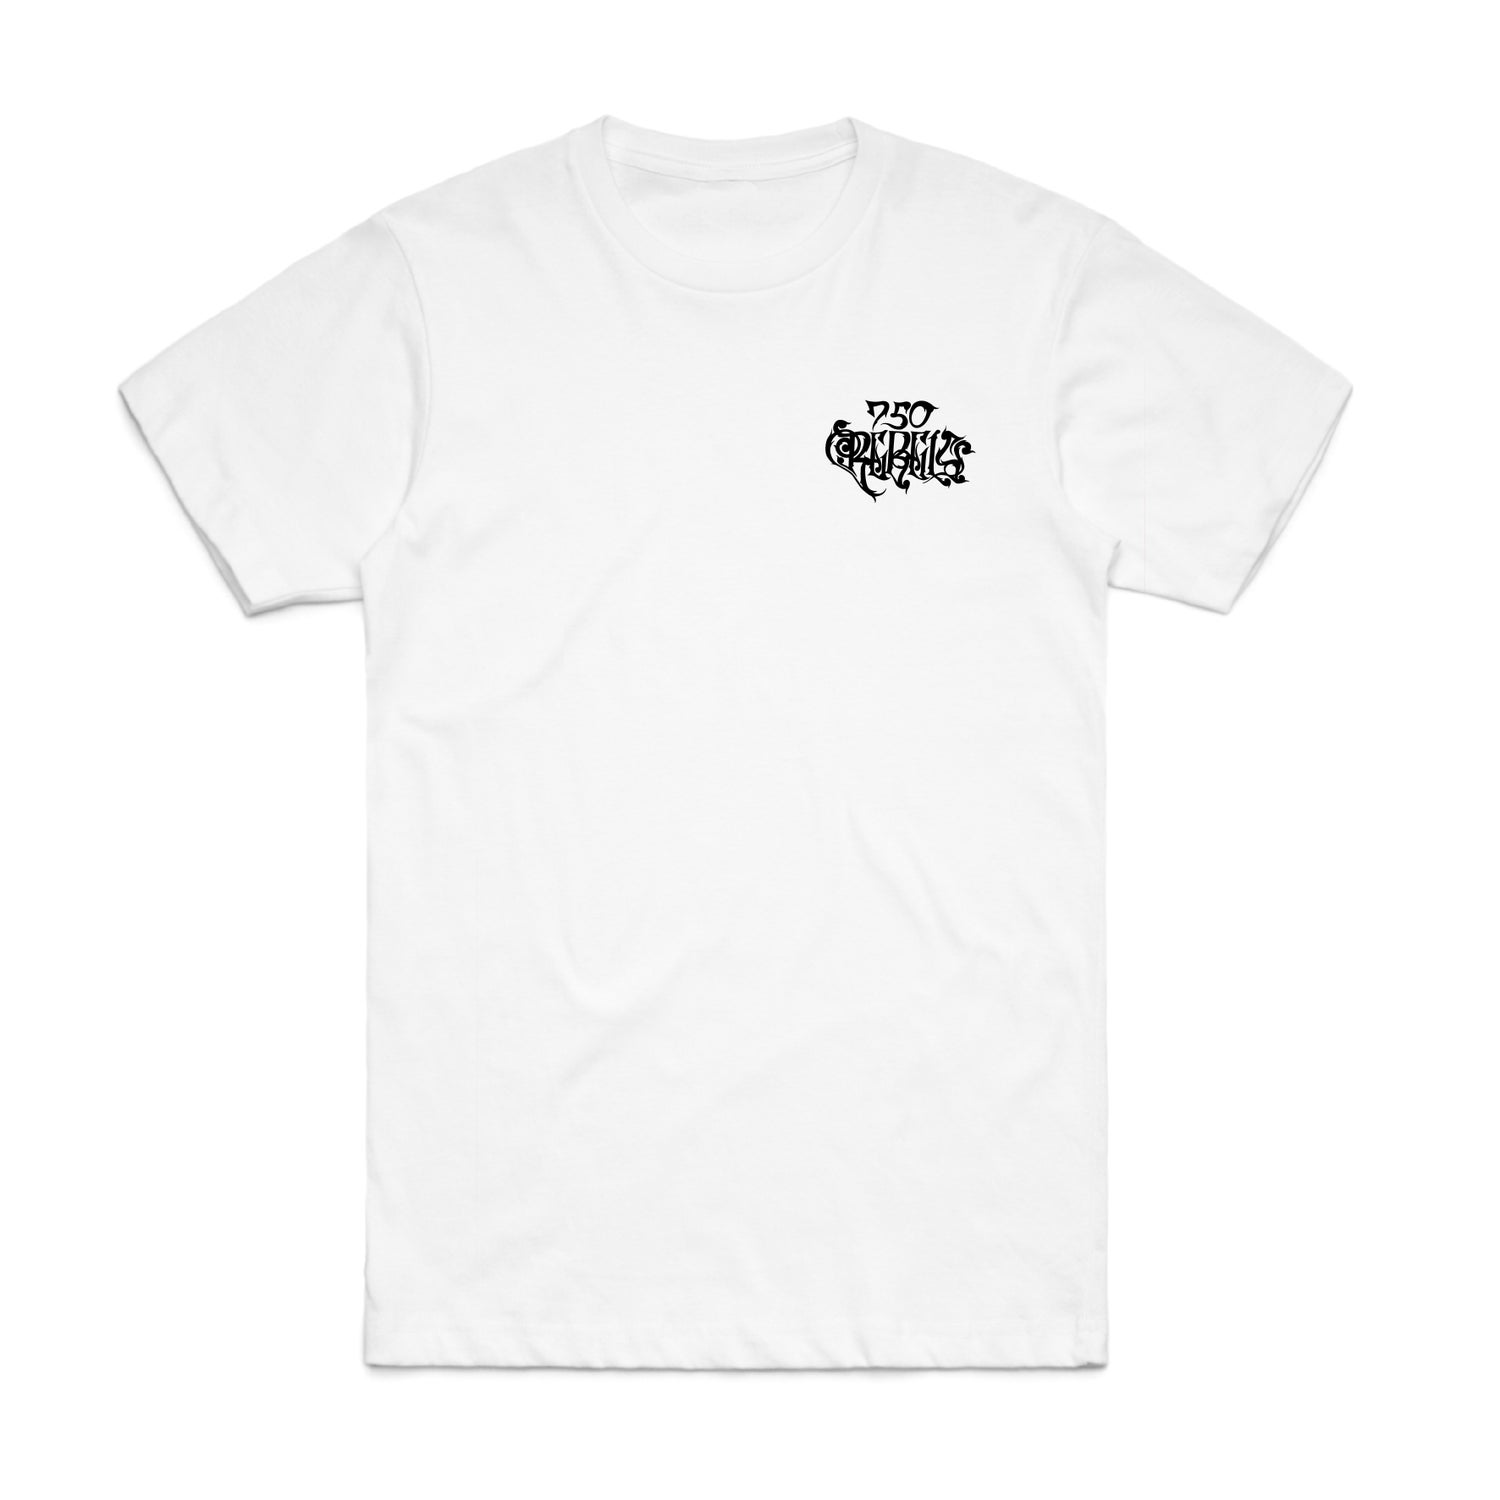 Image of 750 Rebels x Porns THC -  Freedom Fighters T Shirt